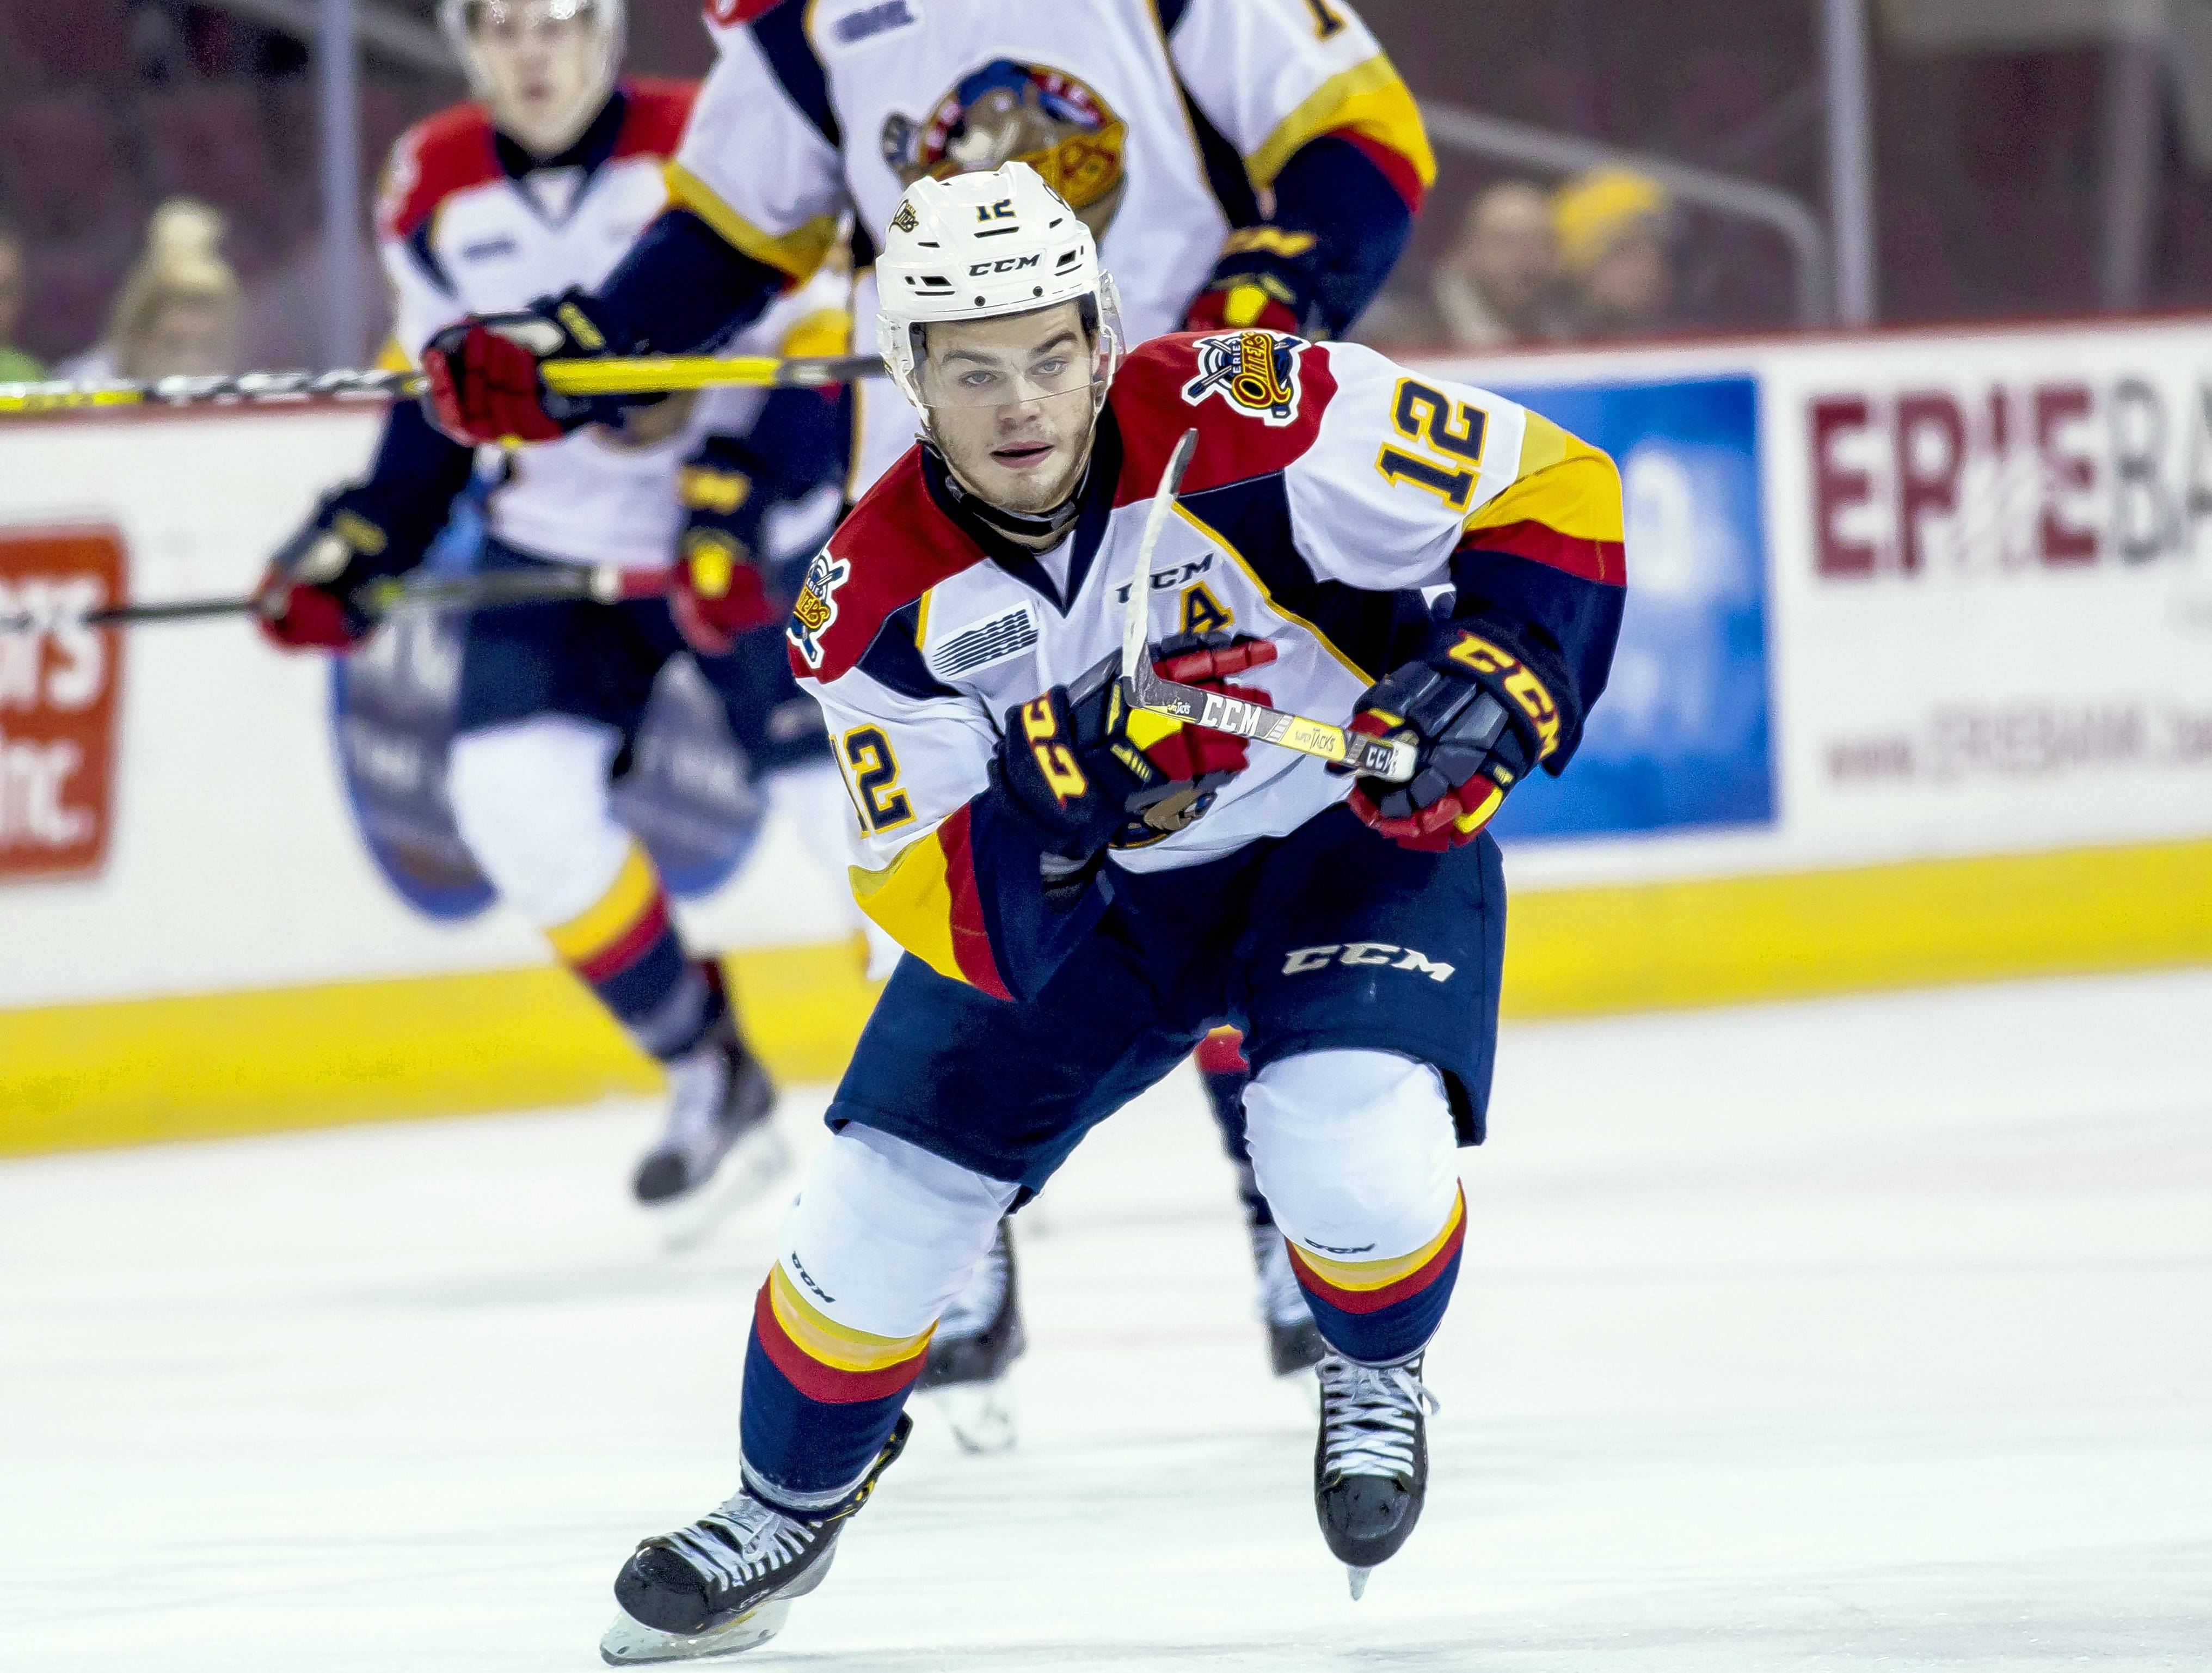 Alex DeBrincat of the Erie Otters could make the Chicago Blackhawks' roster this season.